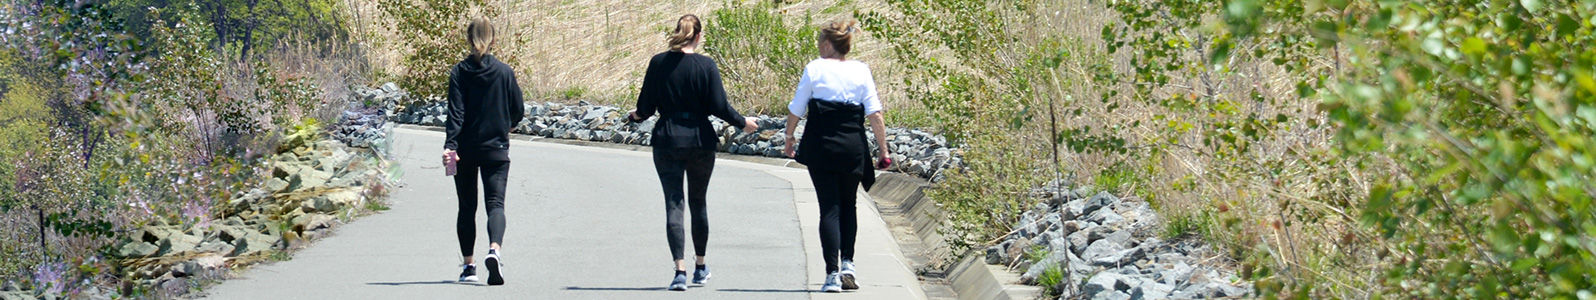 Shape Up NYC Guide to Power Walking